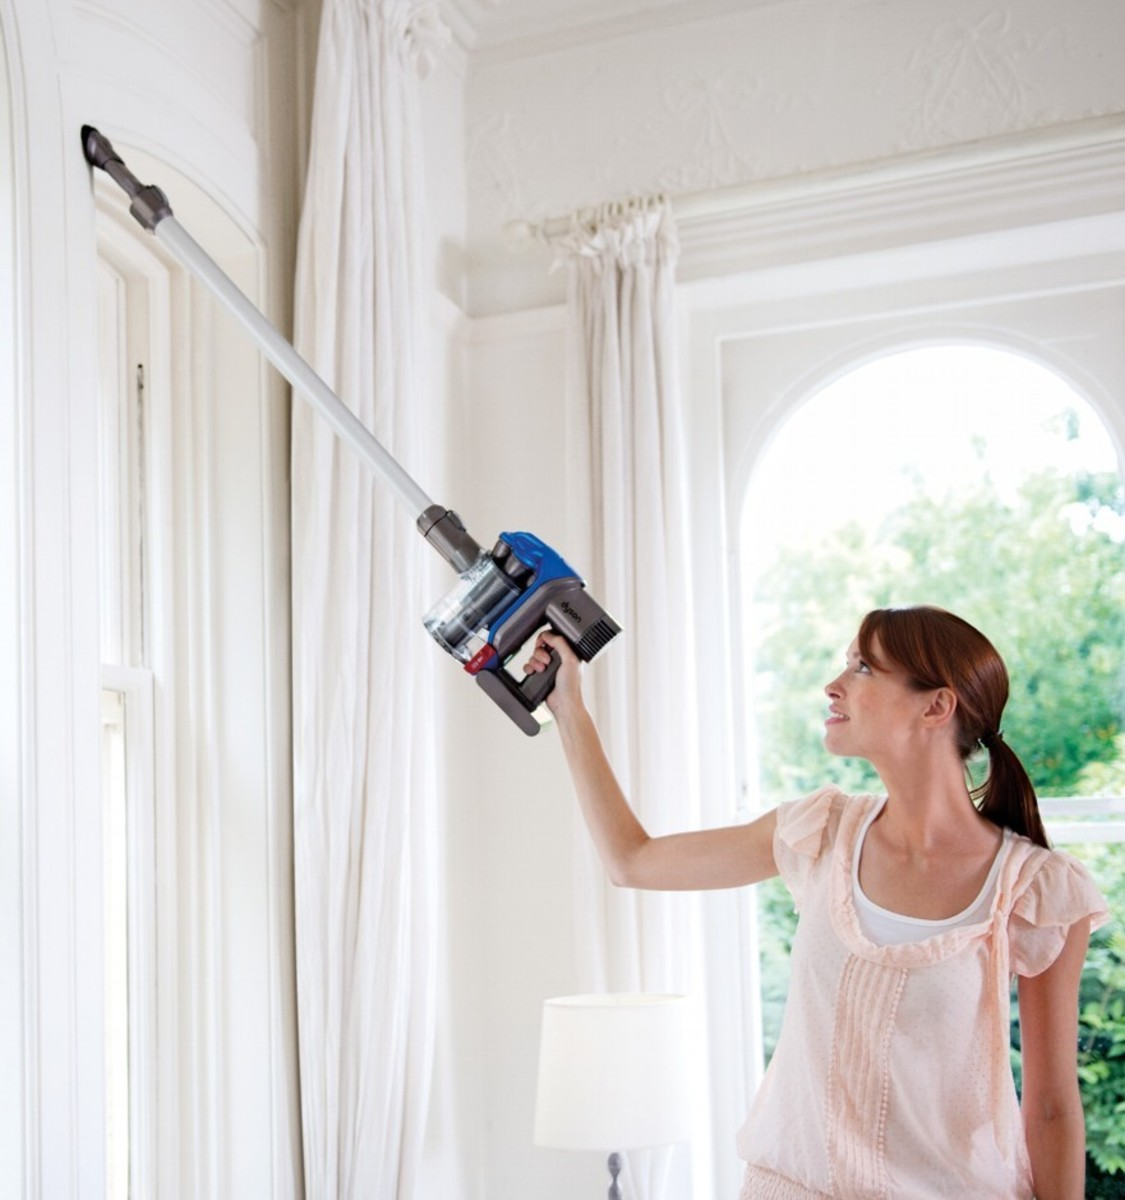 Owneru0027s Review Of The Dyson DC35 Portable: The Best Cordless Or Battery  Vacuum Cleaner   Dengarden